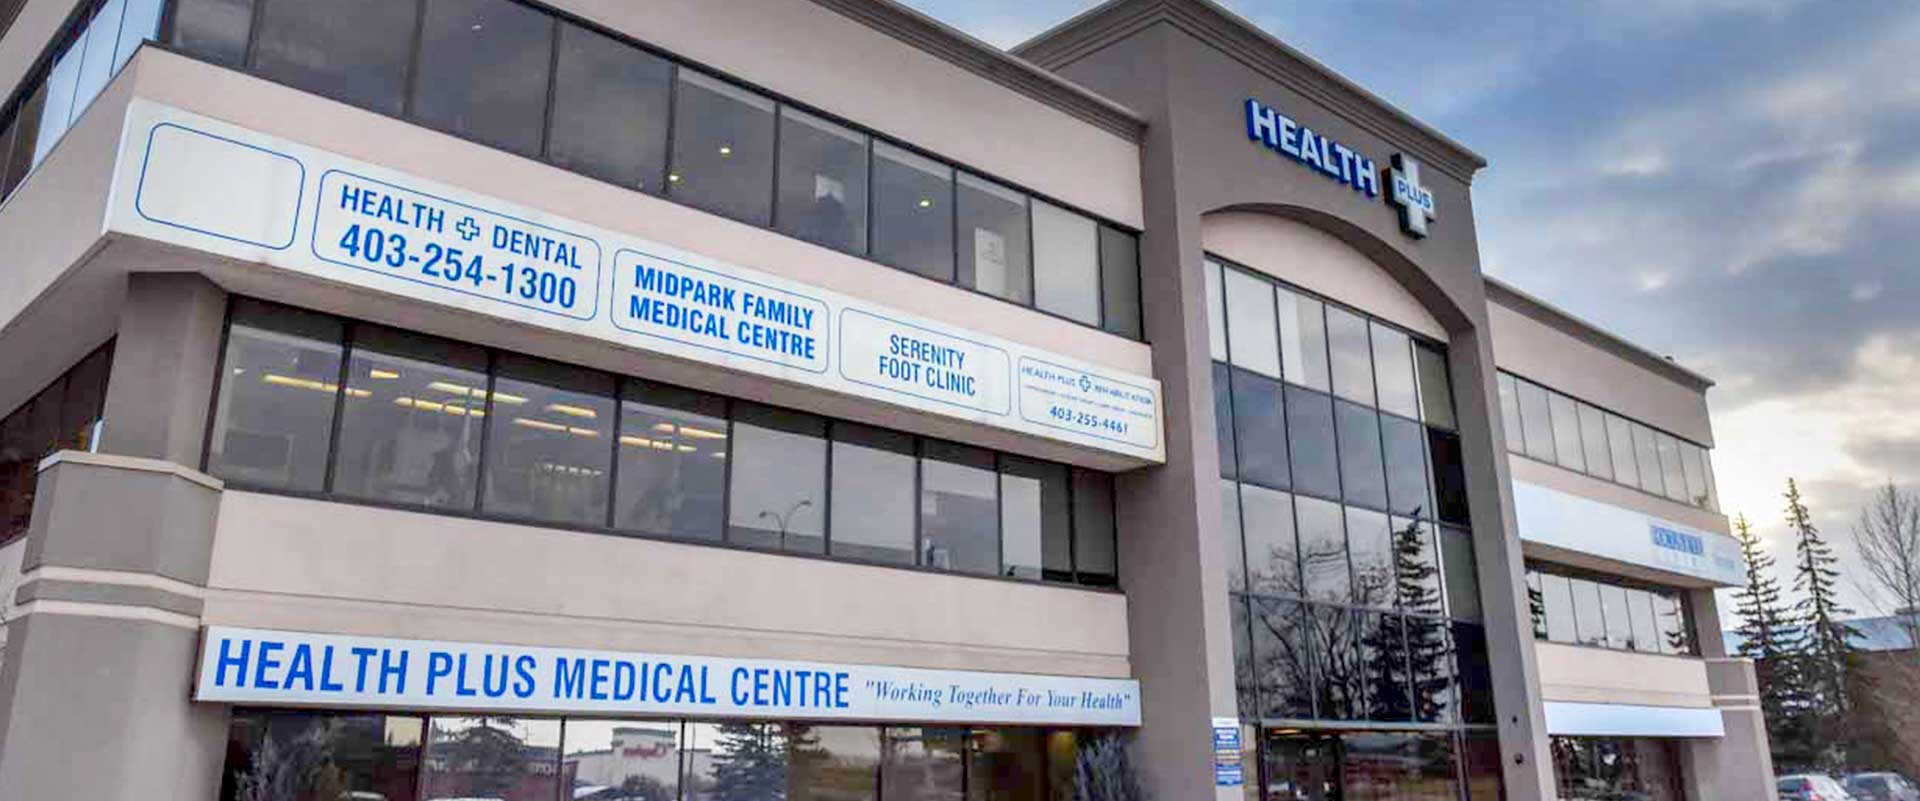 Exterior Of Health Plus Dental at Health Plus Medical Centre Banner